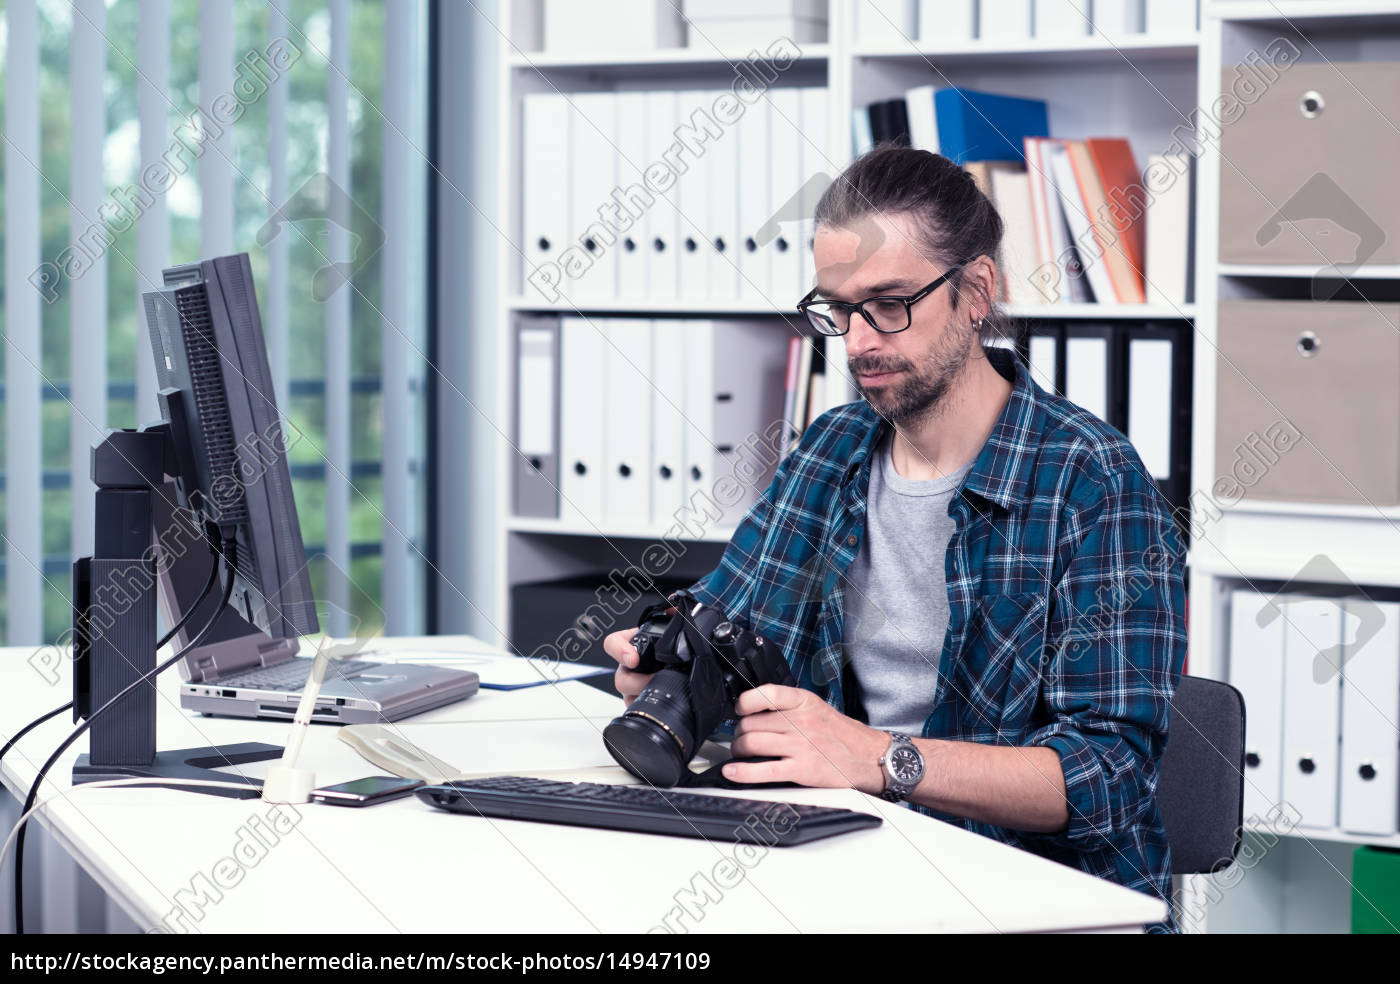 photographer, working, in, his, office - 14947109